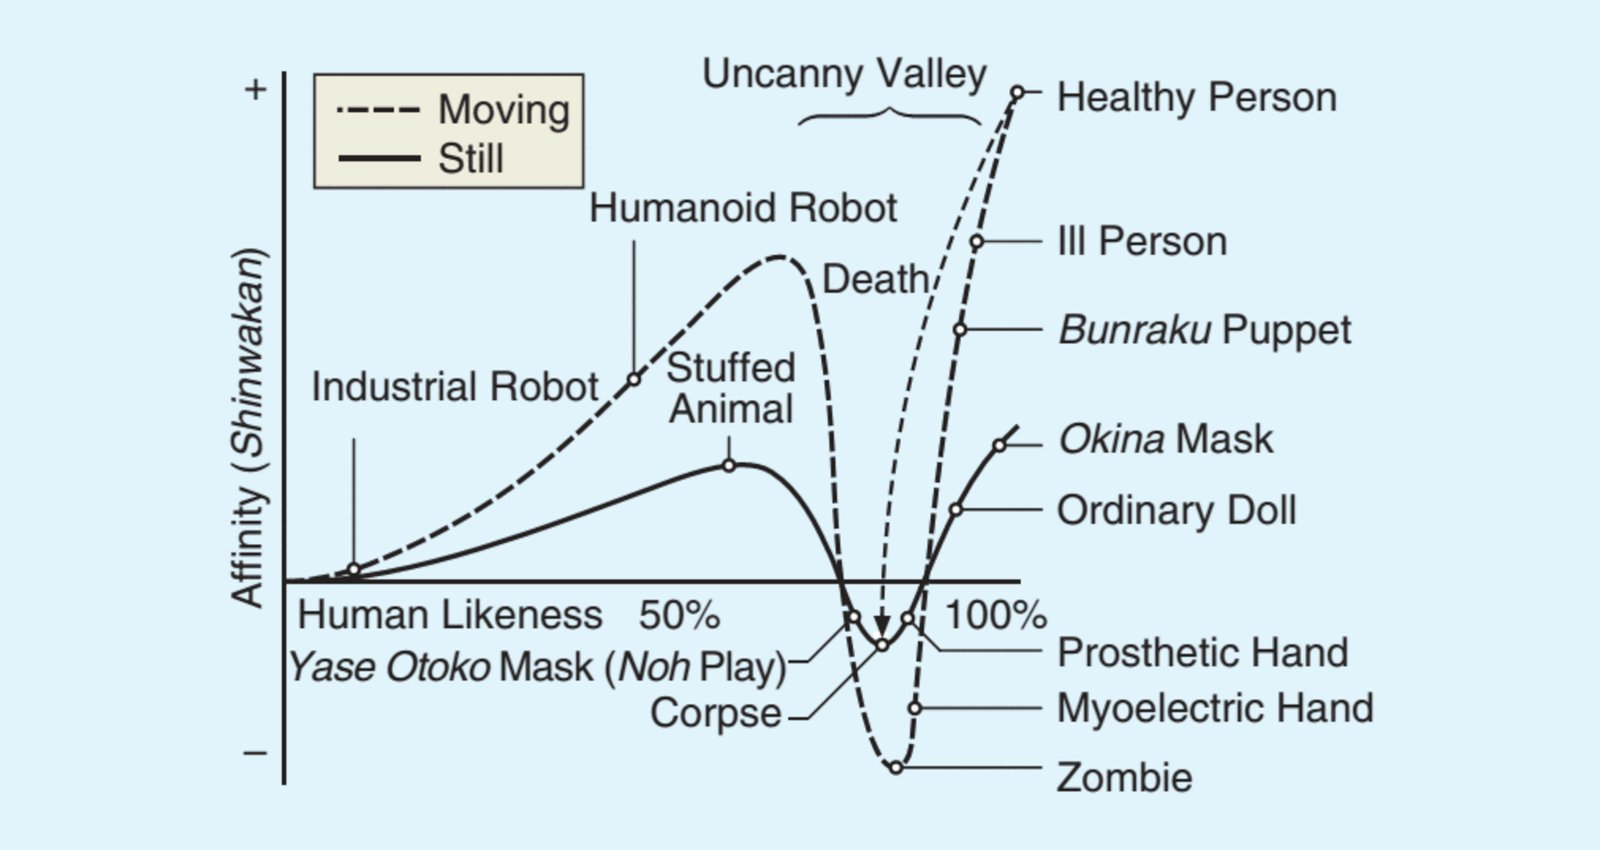 Into the Uncanny Valley